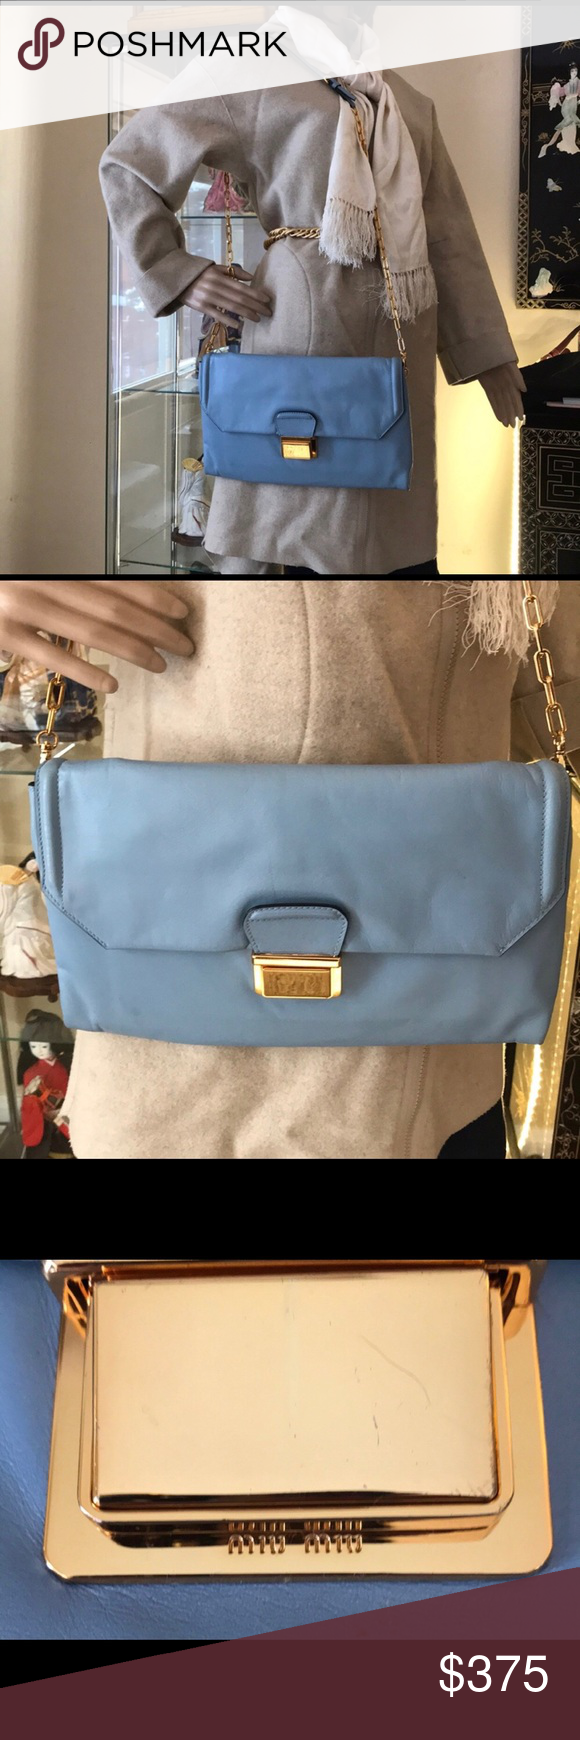 adf0832ca5bc Miu Miu New condition carried once authentic great crossbody Miu Miu Bags  Crossbody Bags